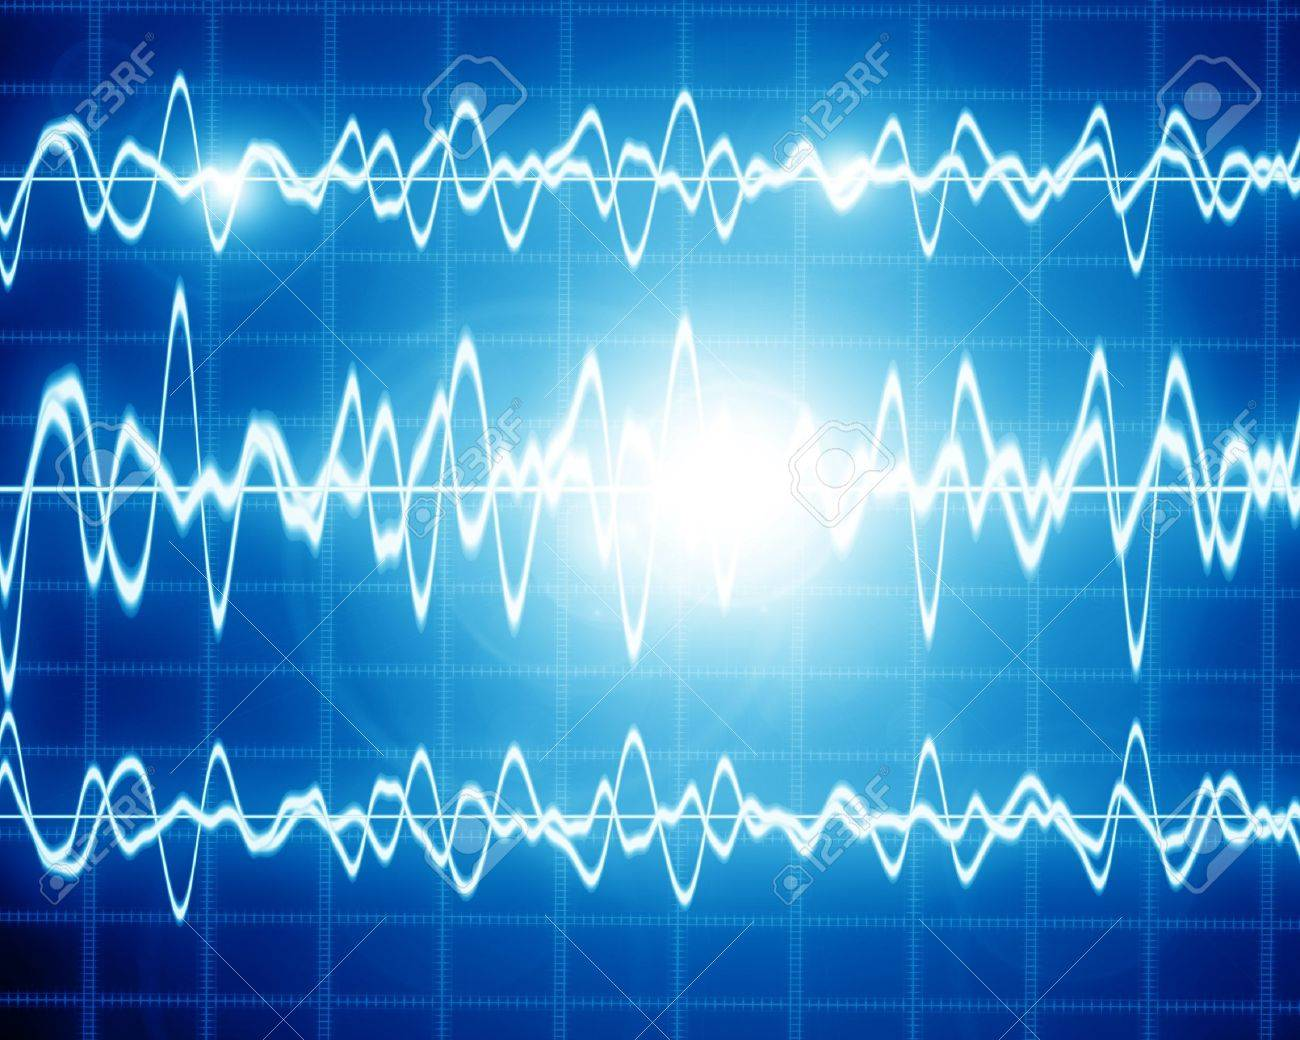 sound wave on a bright blue background Stock Photo - 14949284